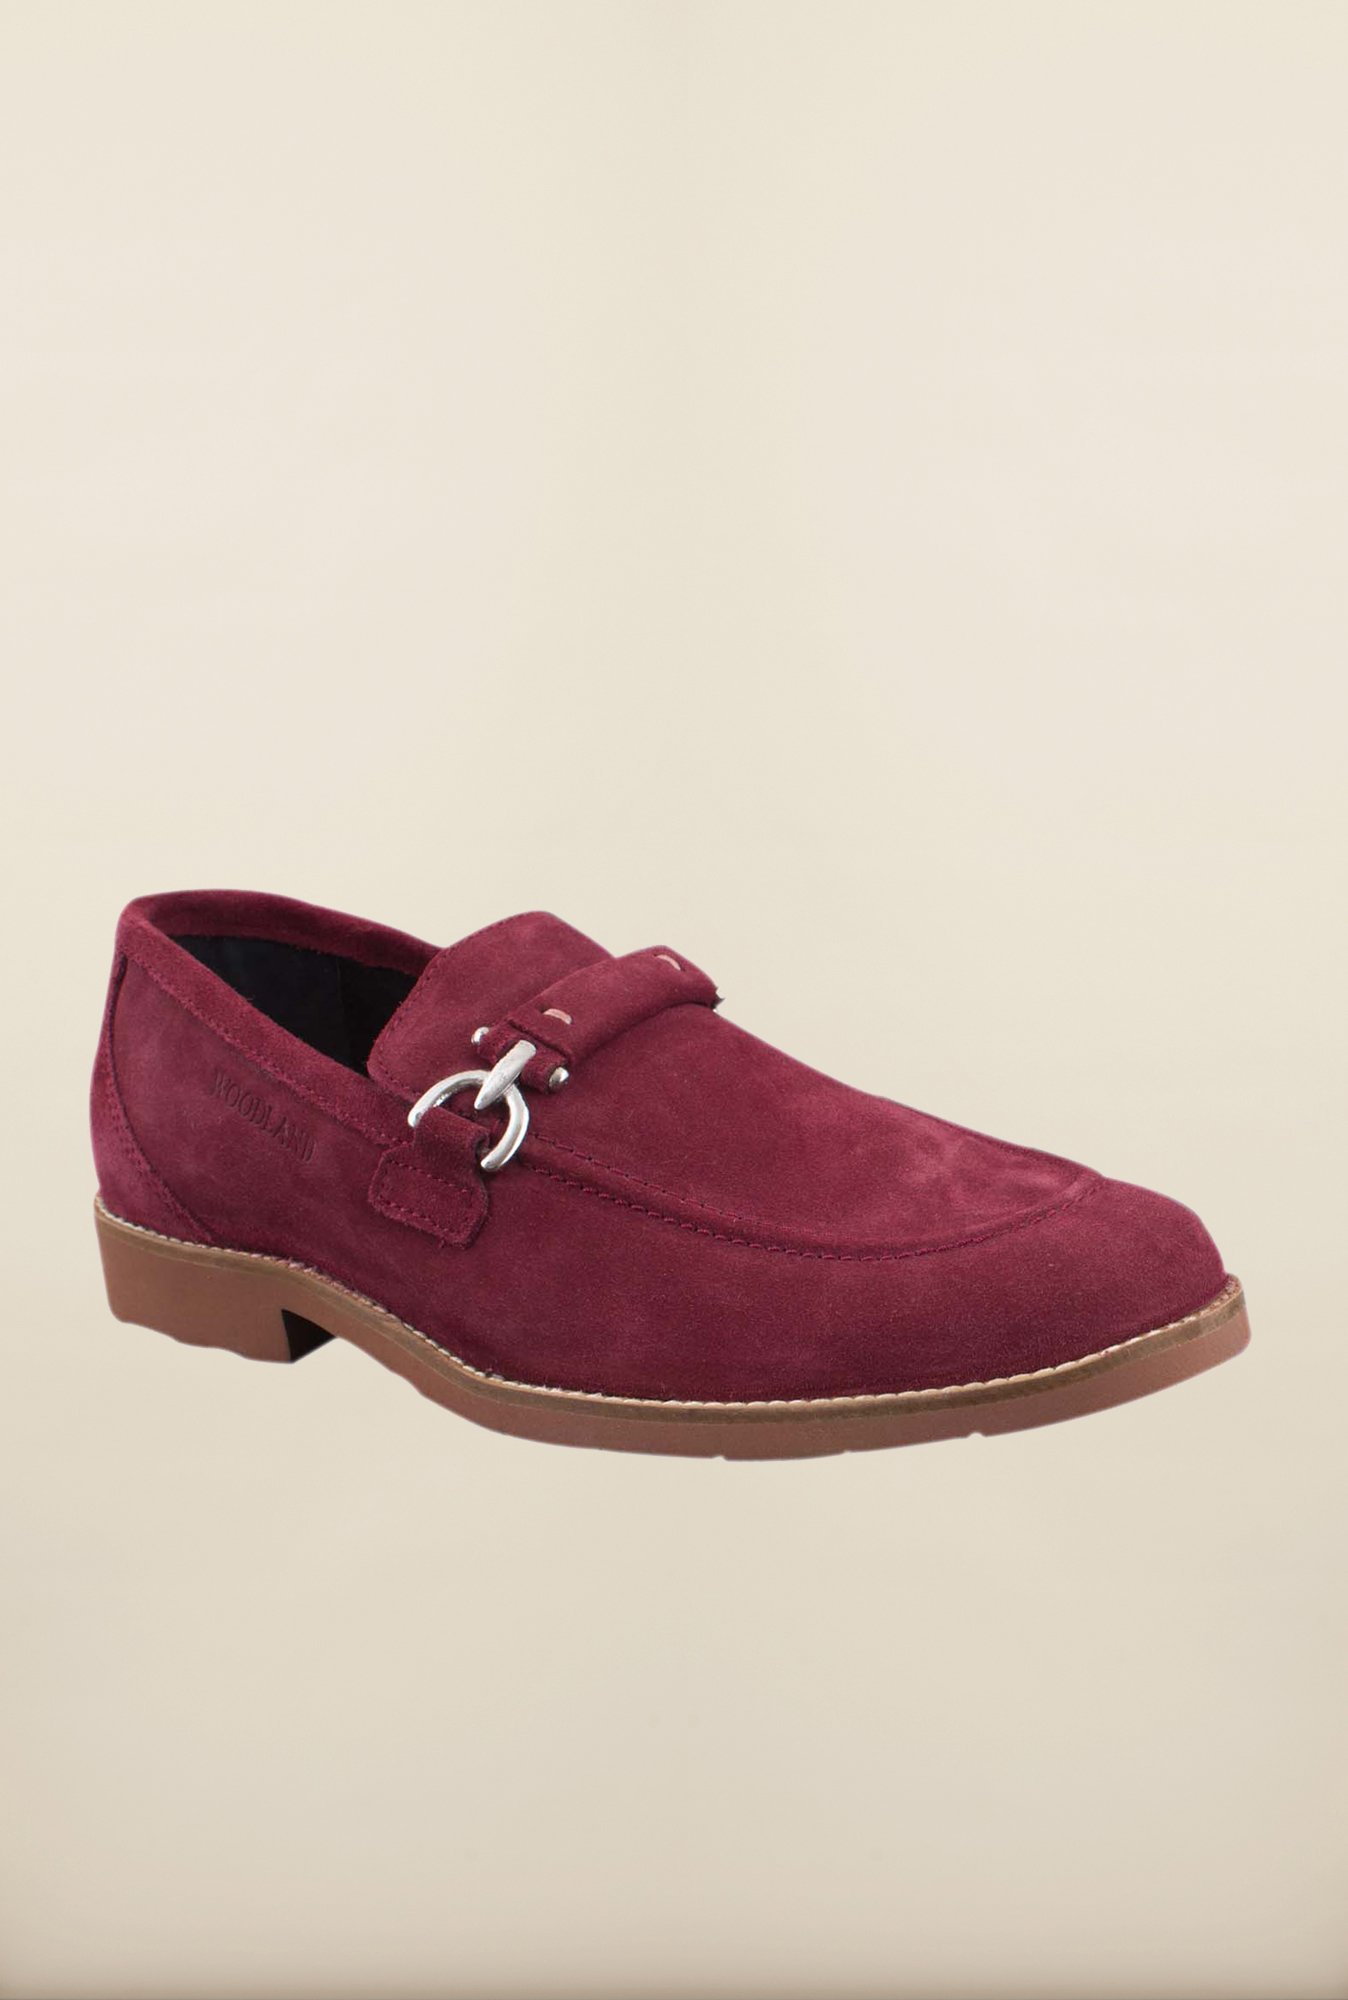 Woodland Cherry Oxford Shoes